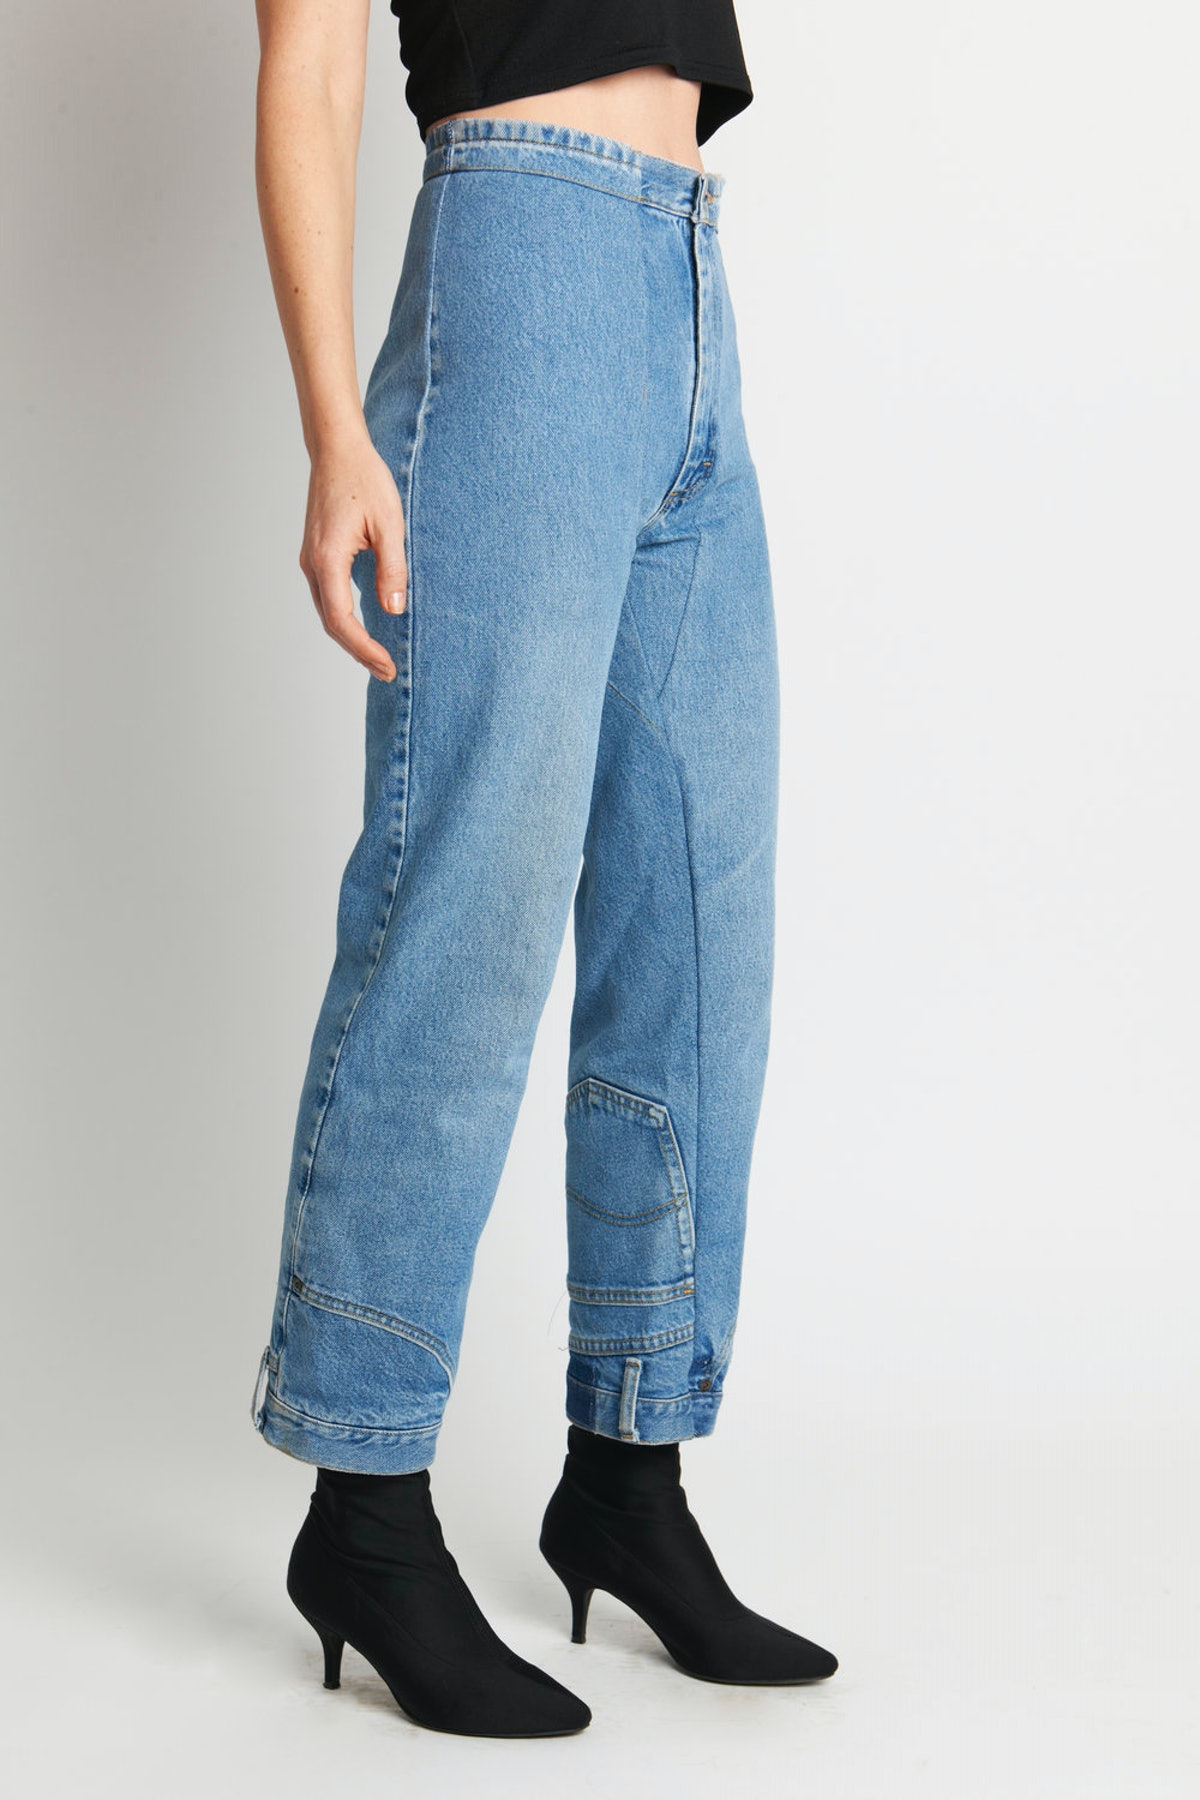 Will Jeans